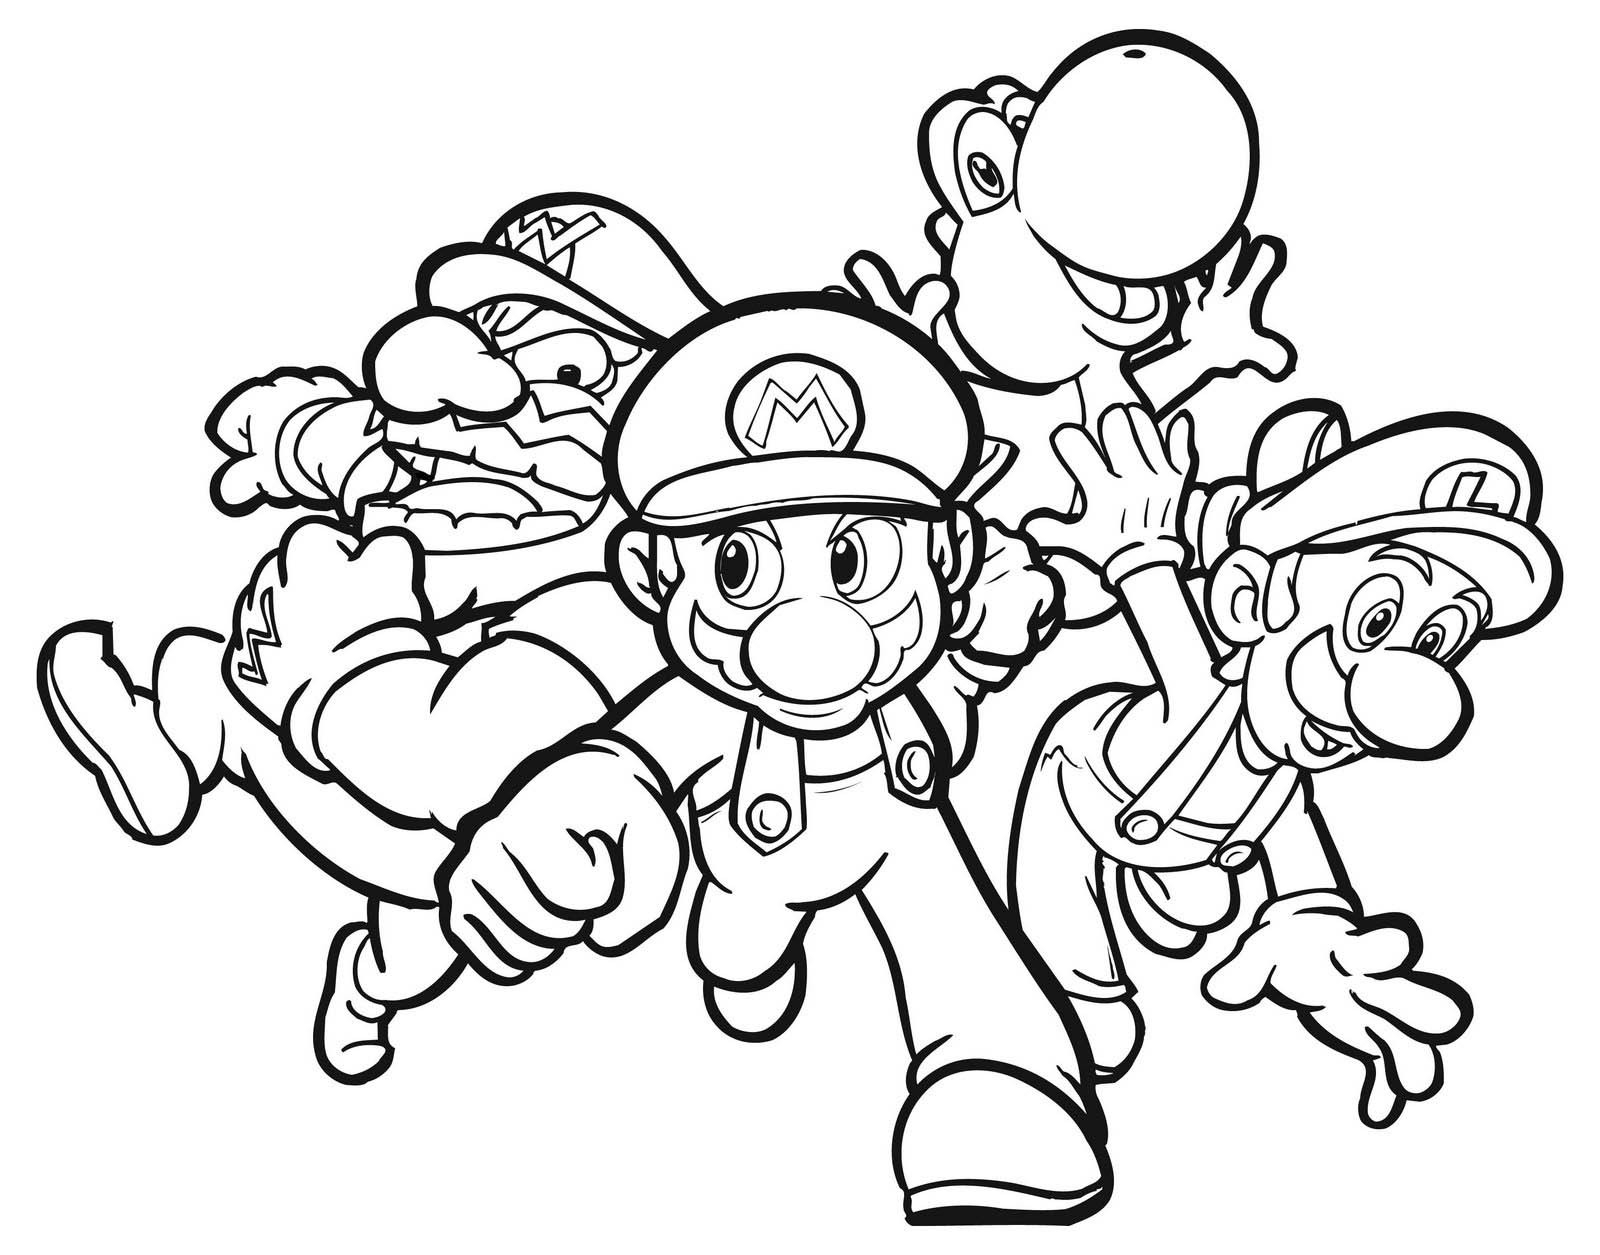 Best Coloring Pages 40 Best Of Pics Of Mario Coloring Pages to Print Download Of Super Mario Coloring Pages Bonnieleepanda Gallery